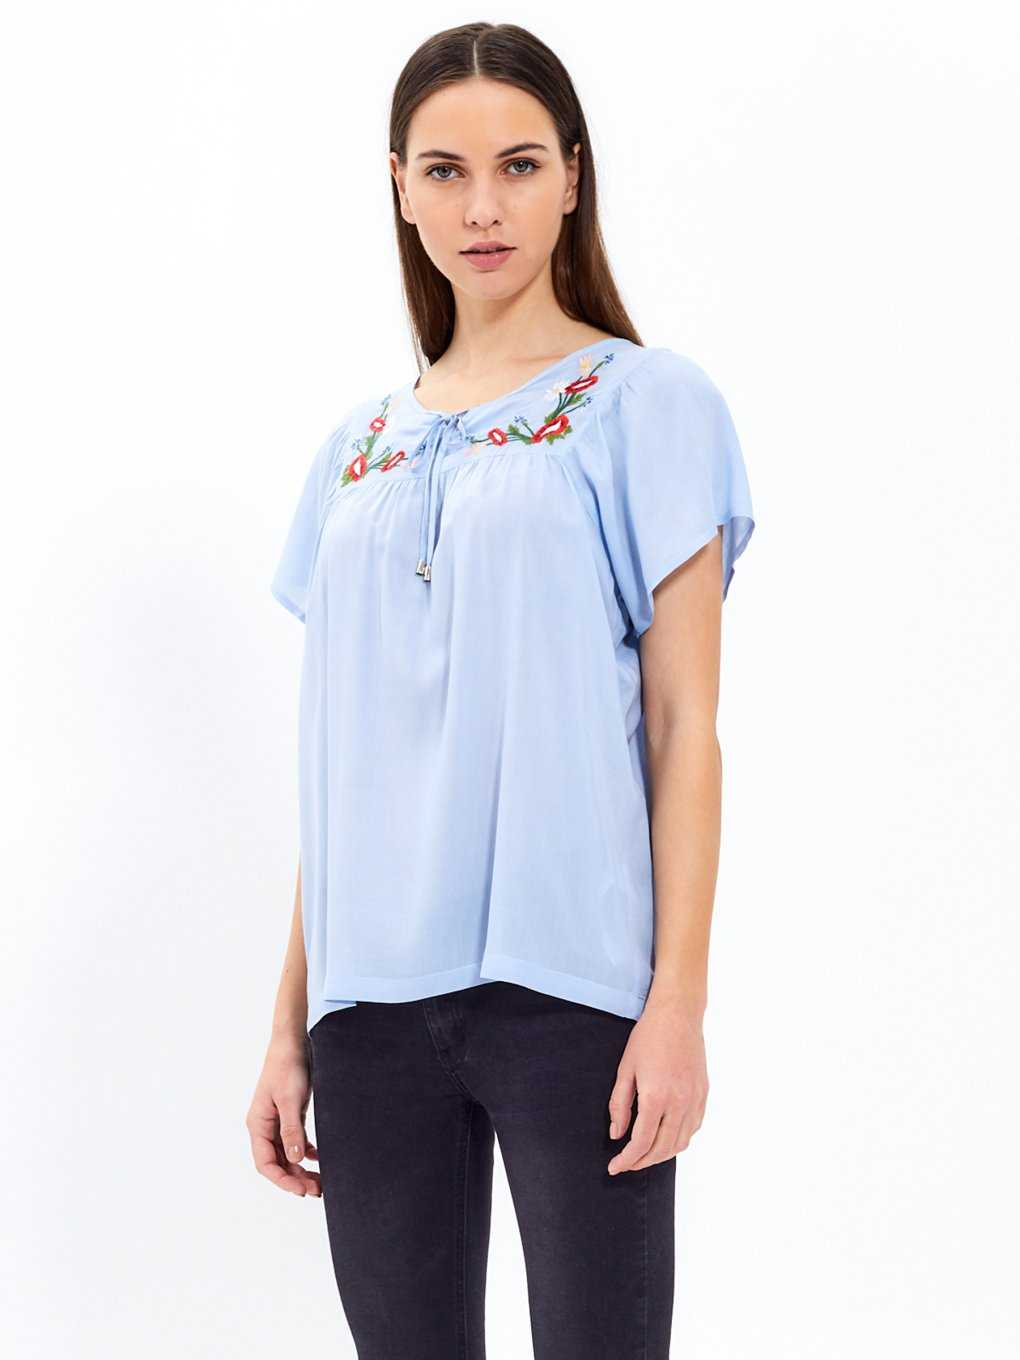 Blouse top with embroidery